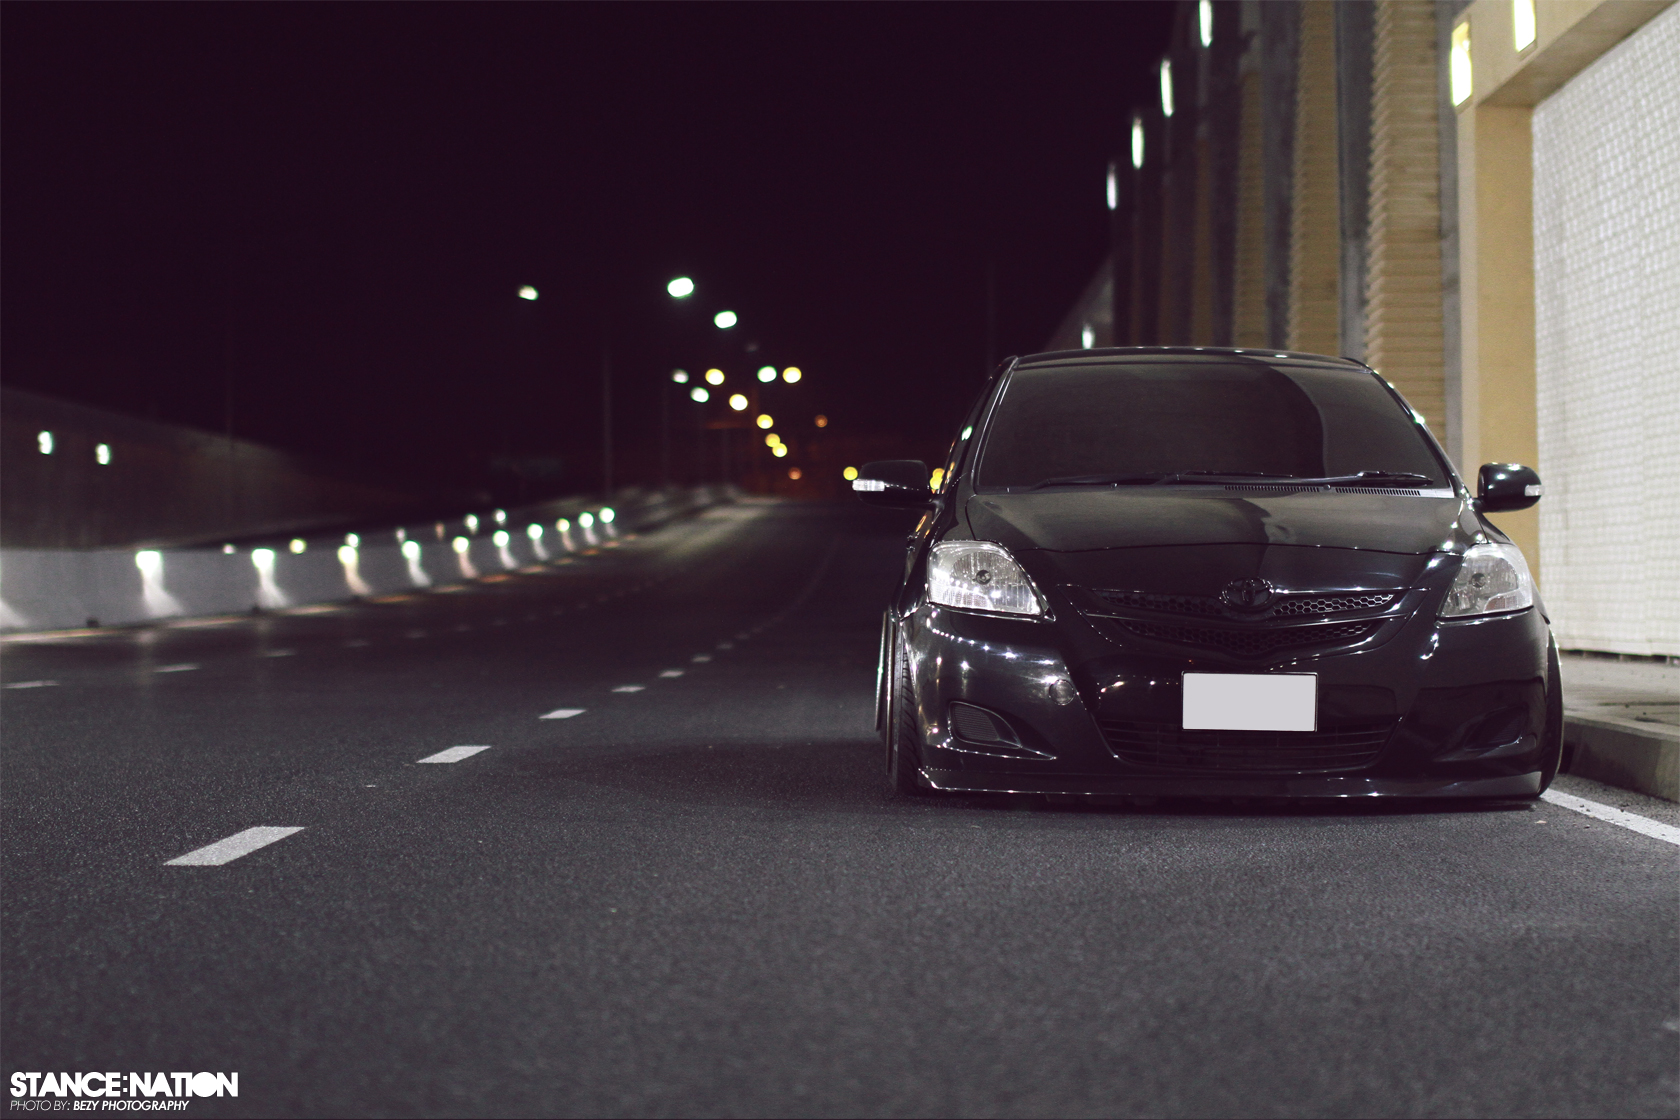 Hd Jdm Car Wallpapers Say It Ain T So Stancenation Form Gt Function